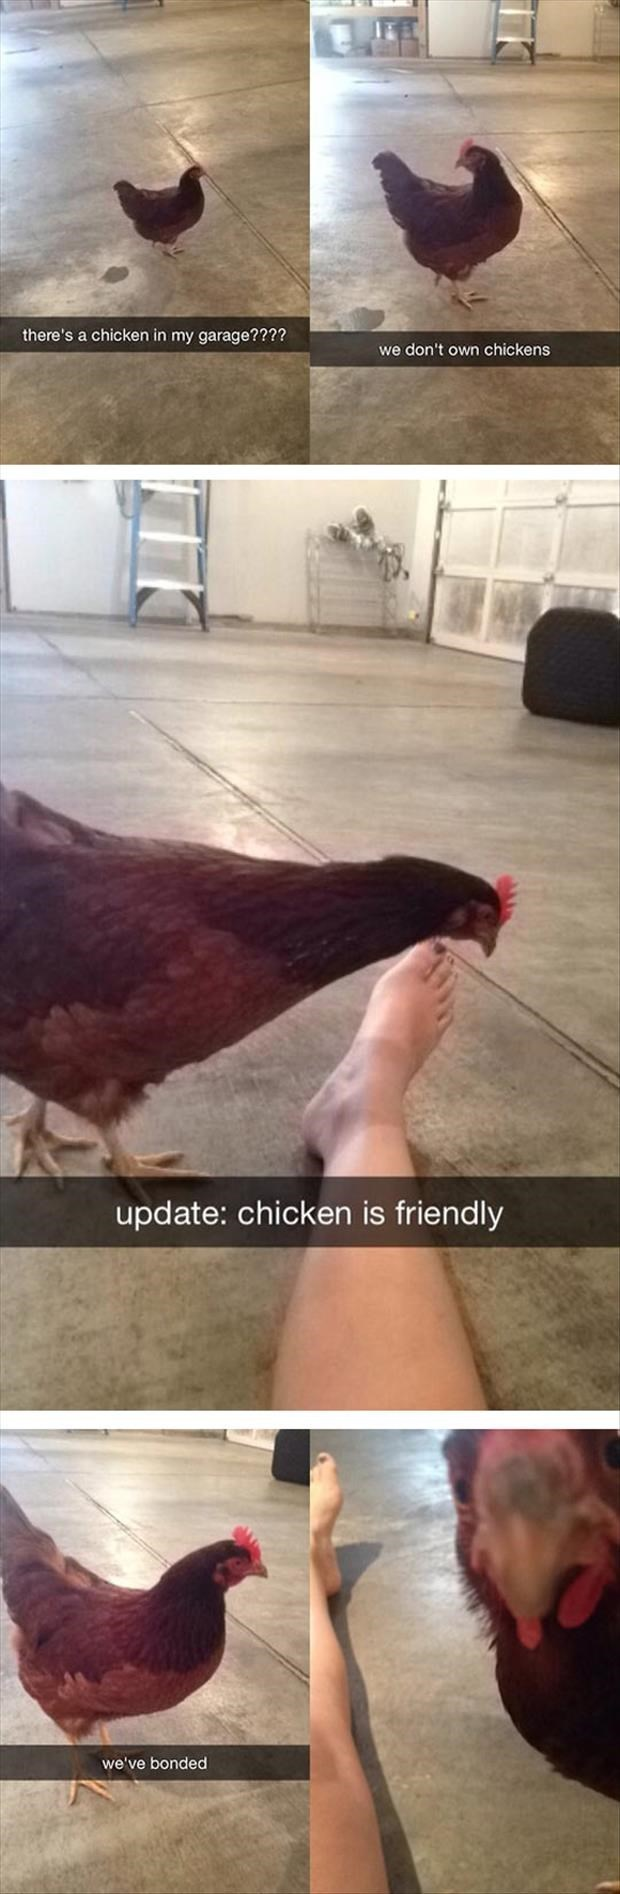 Hair - there's a chicken in my garage???? we don't own chickens update: chicken is friendly we've bonded